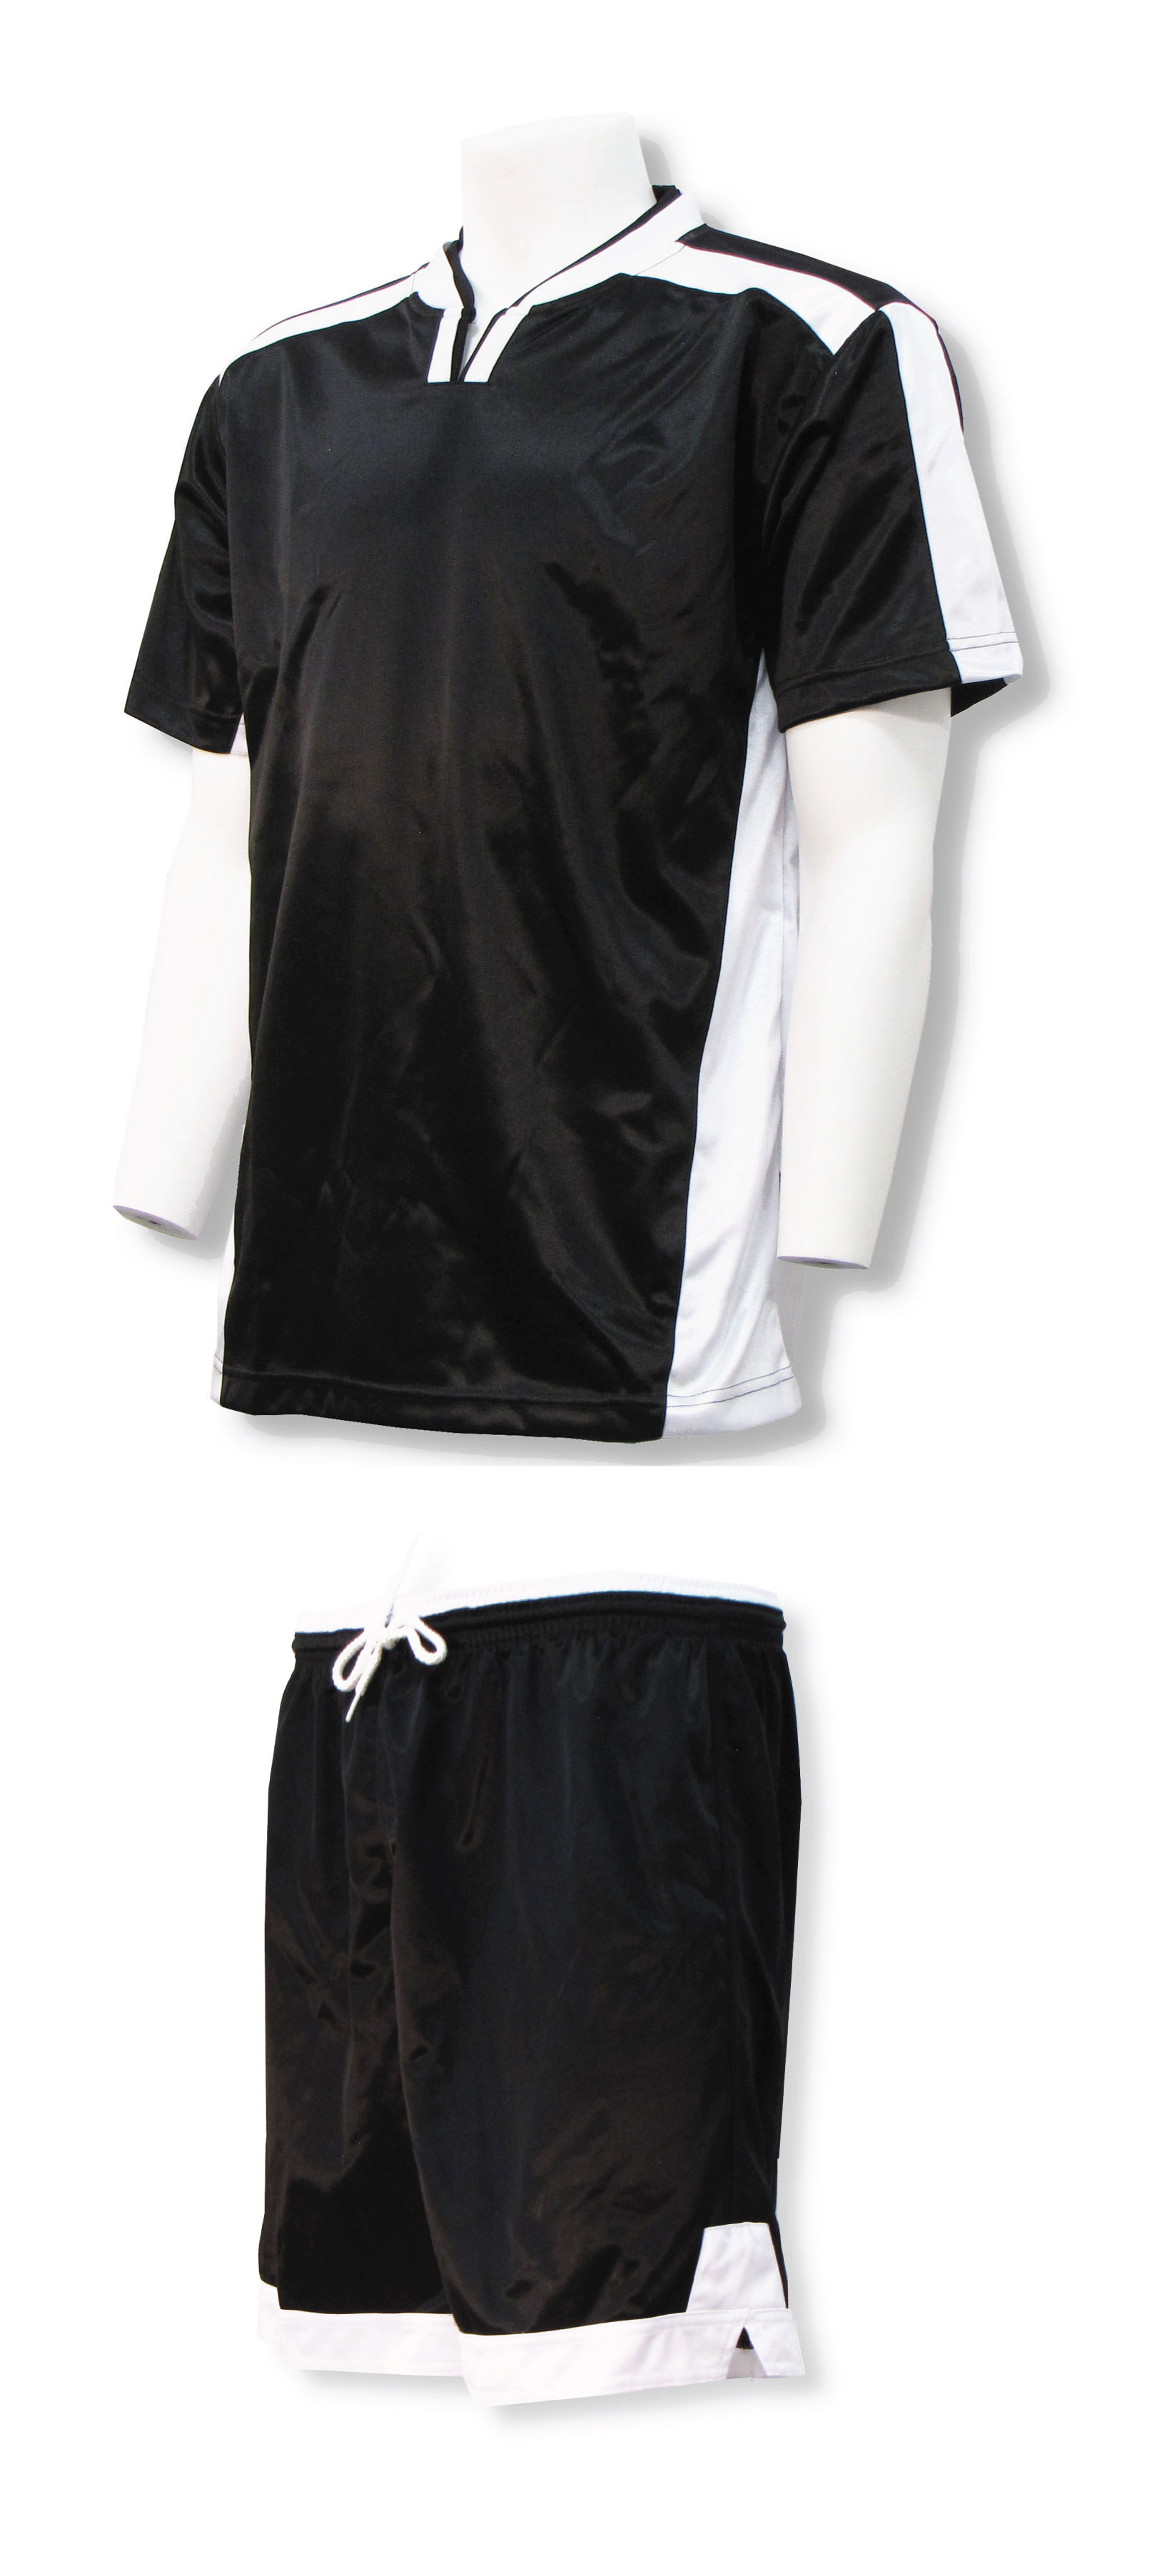 Winchester soccer jersey-short set in black/white by Code Four Athletics